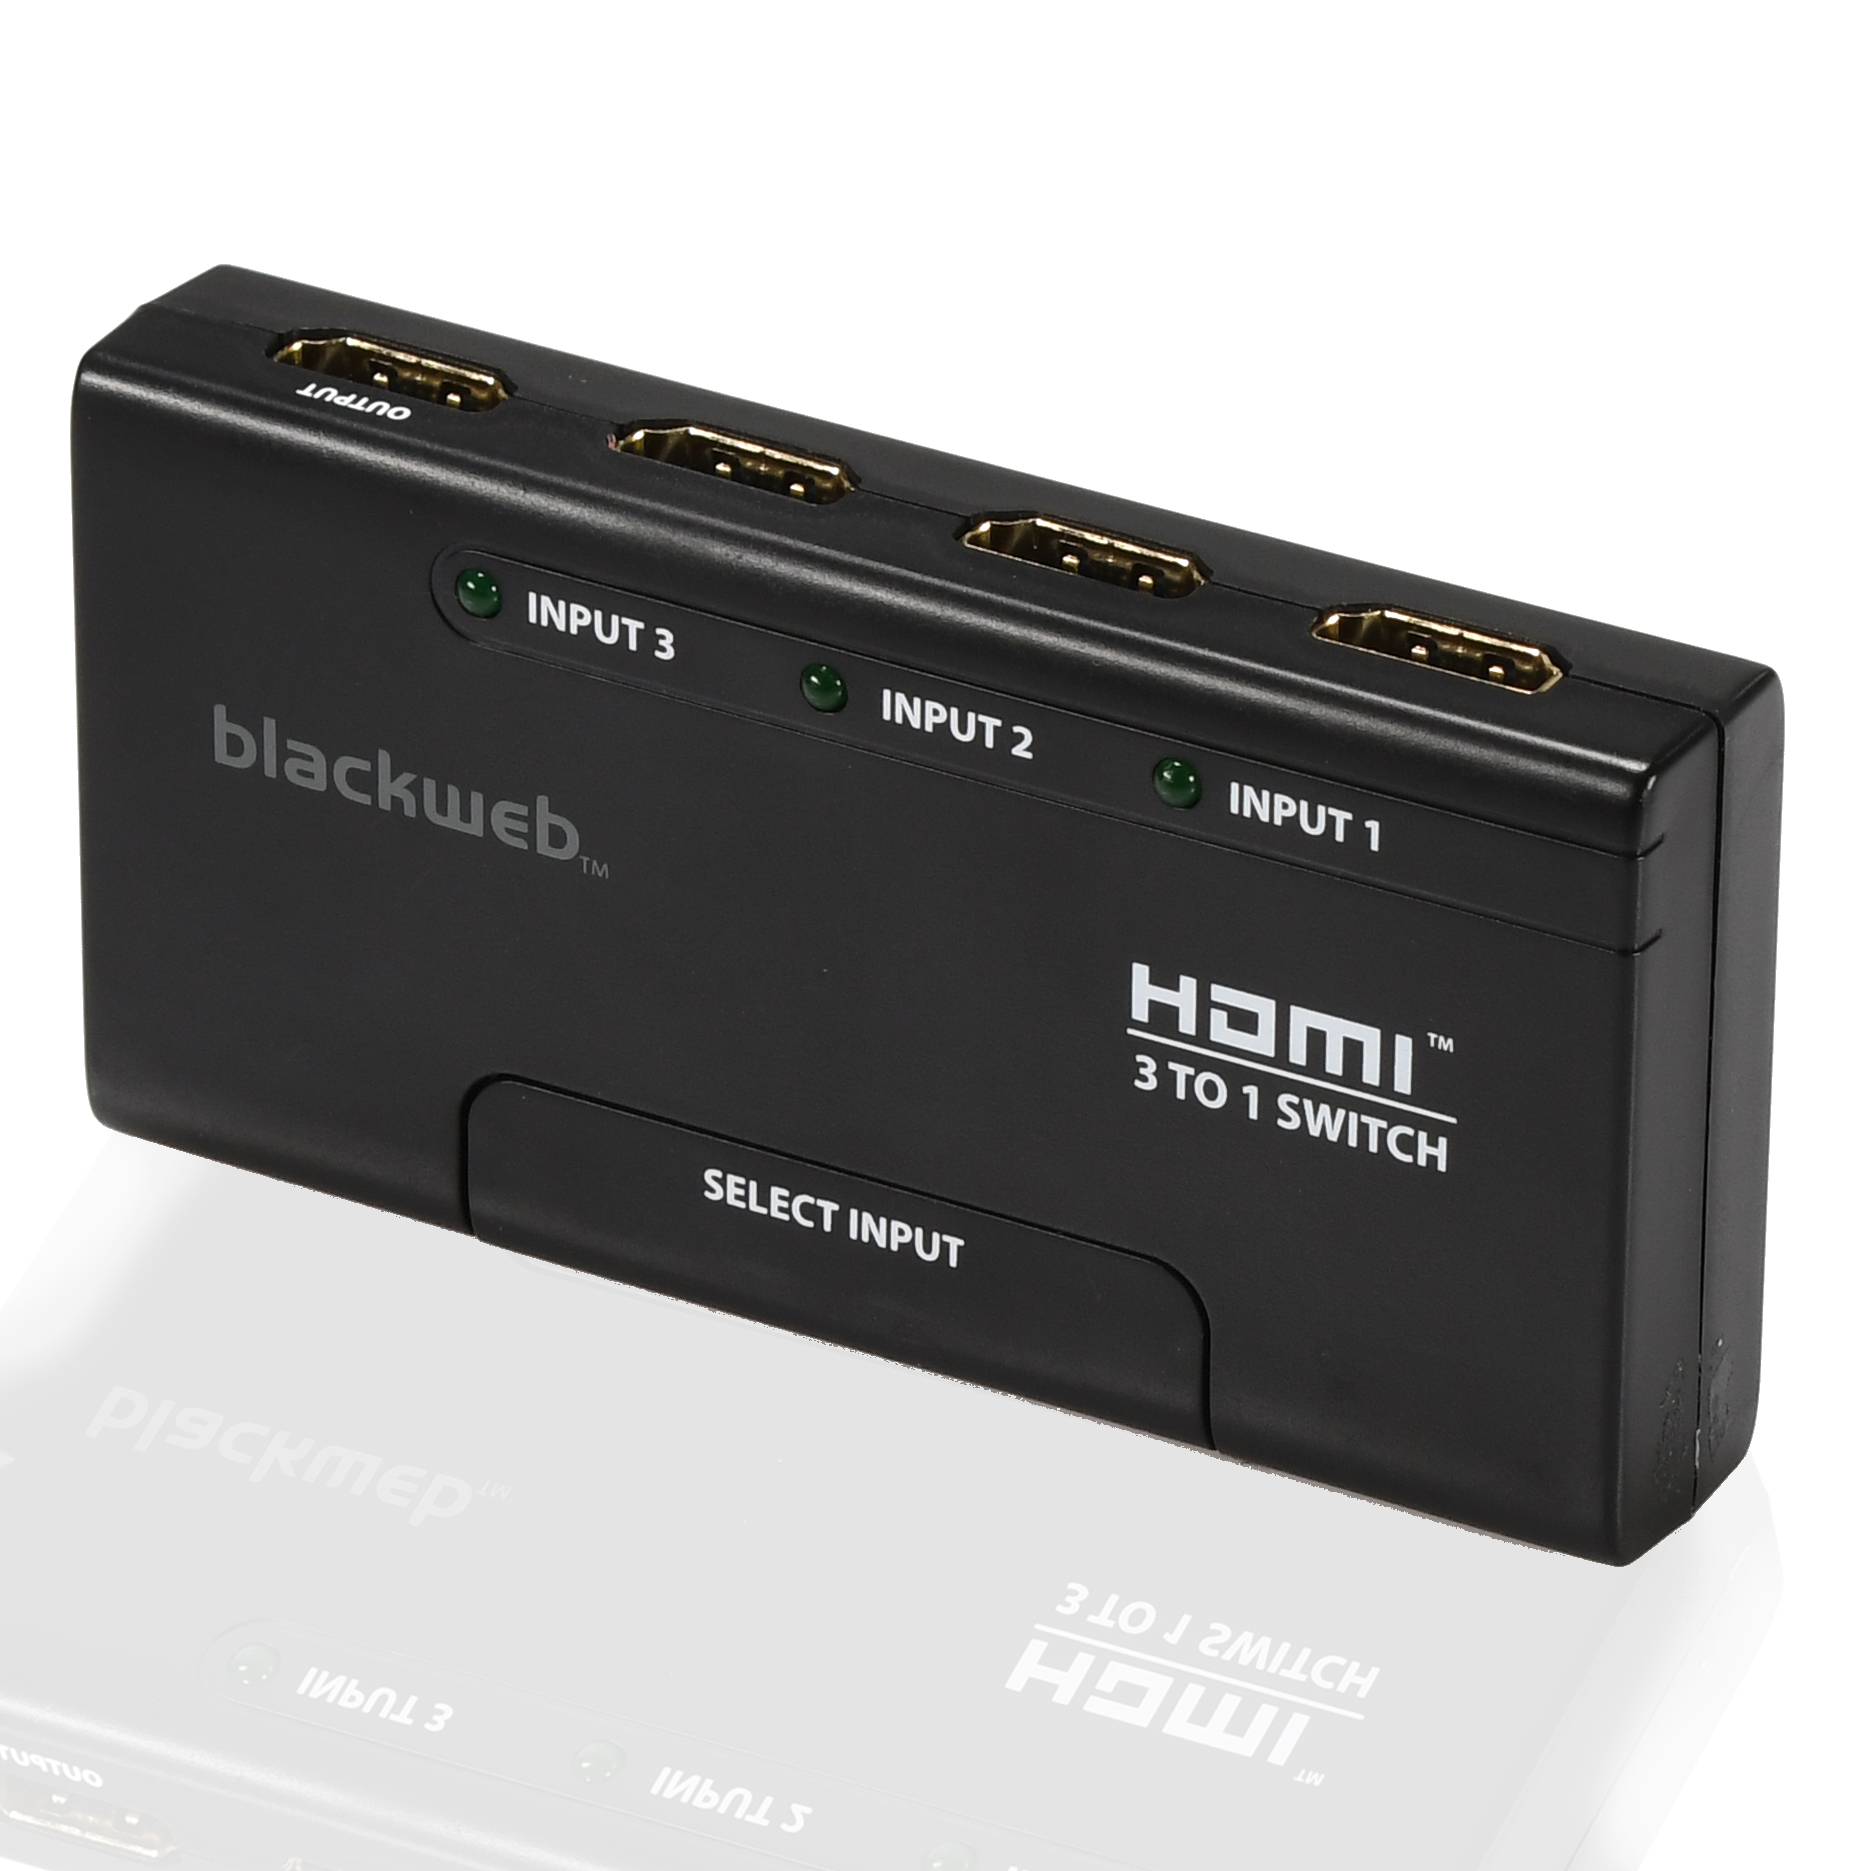 Blackweb 3 Device Hdmi Switch With Remote Control R C For Radio Applications